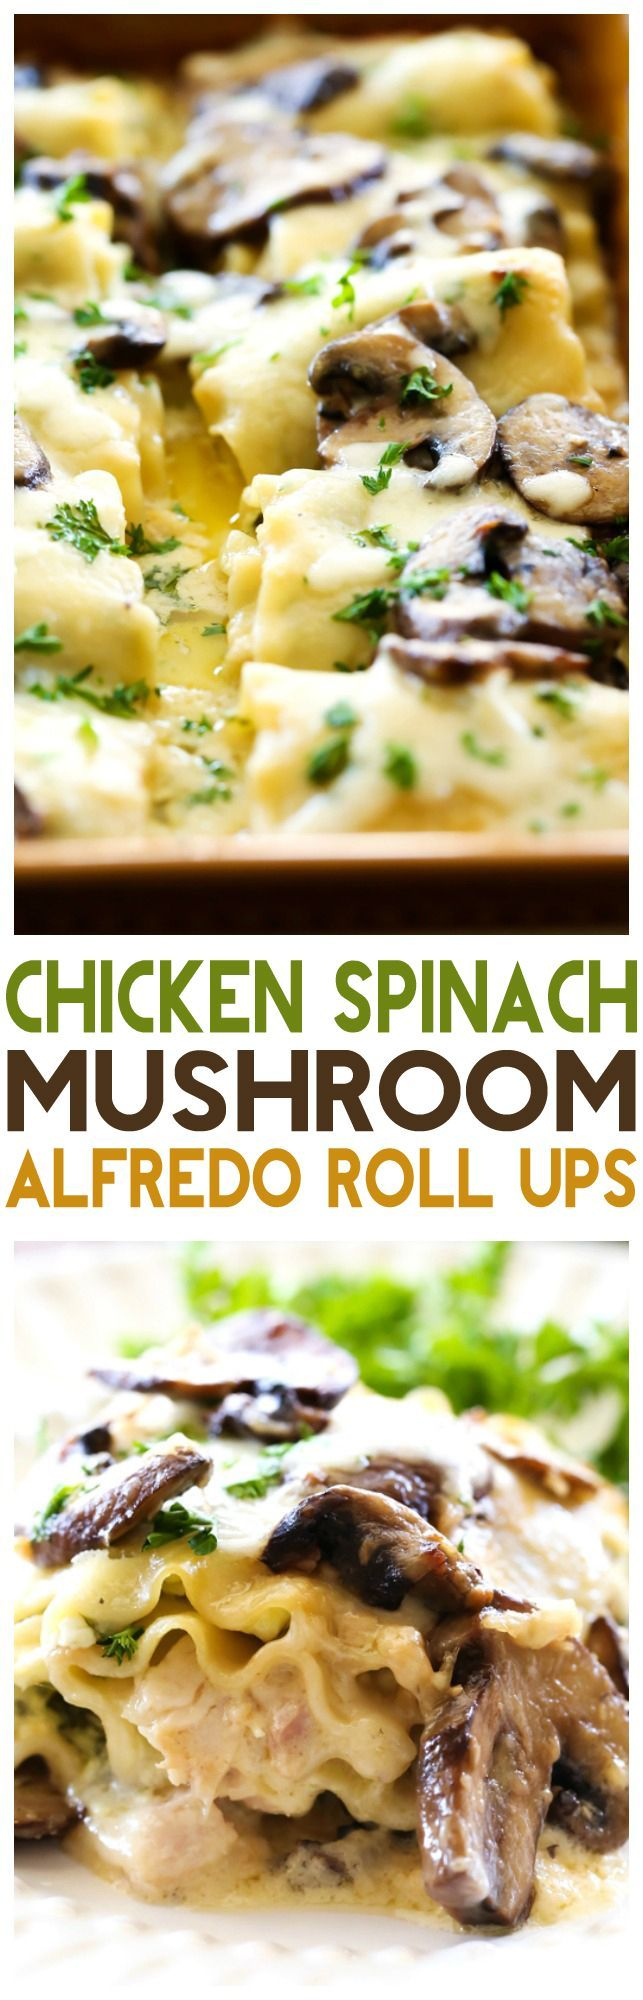 Chicken Spinach Mushroom Alfredo Roll Ups... These. Are. INCREDIBLE! Seriously one of THE BEST dinners I have ever had!